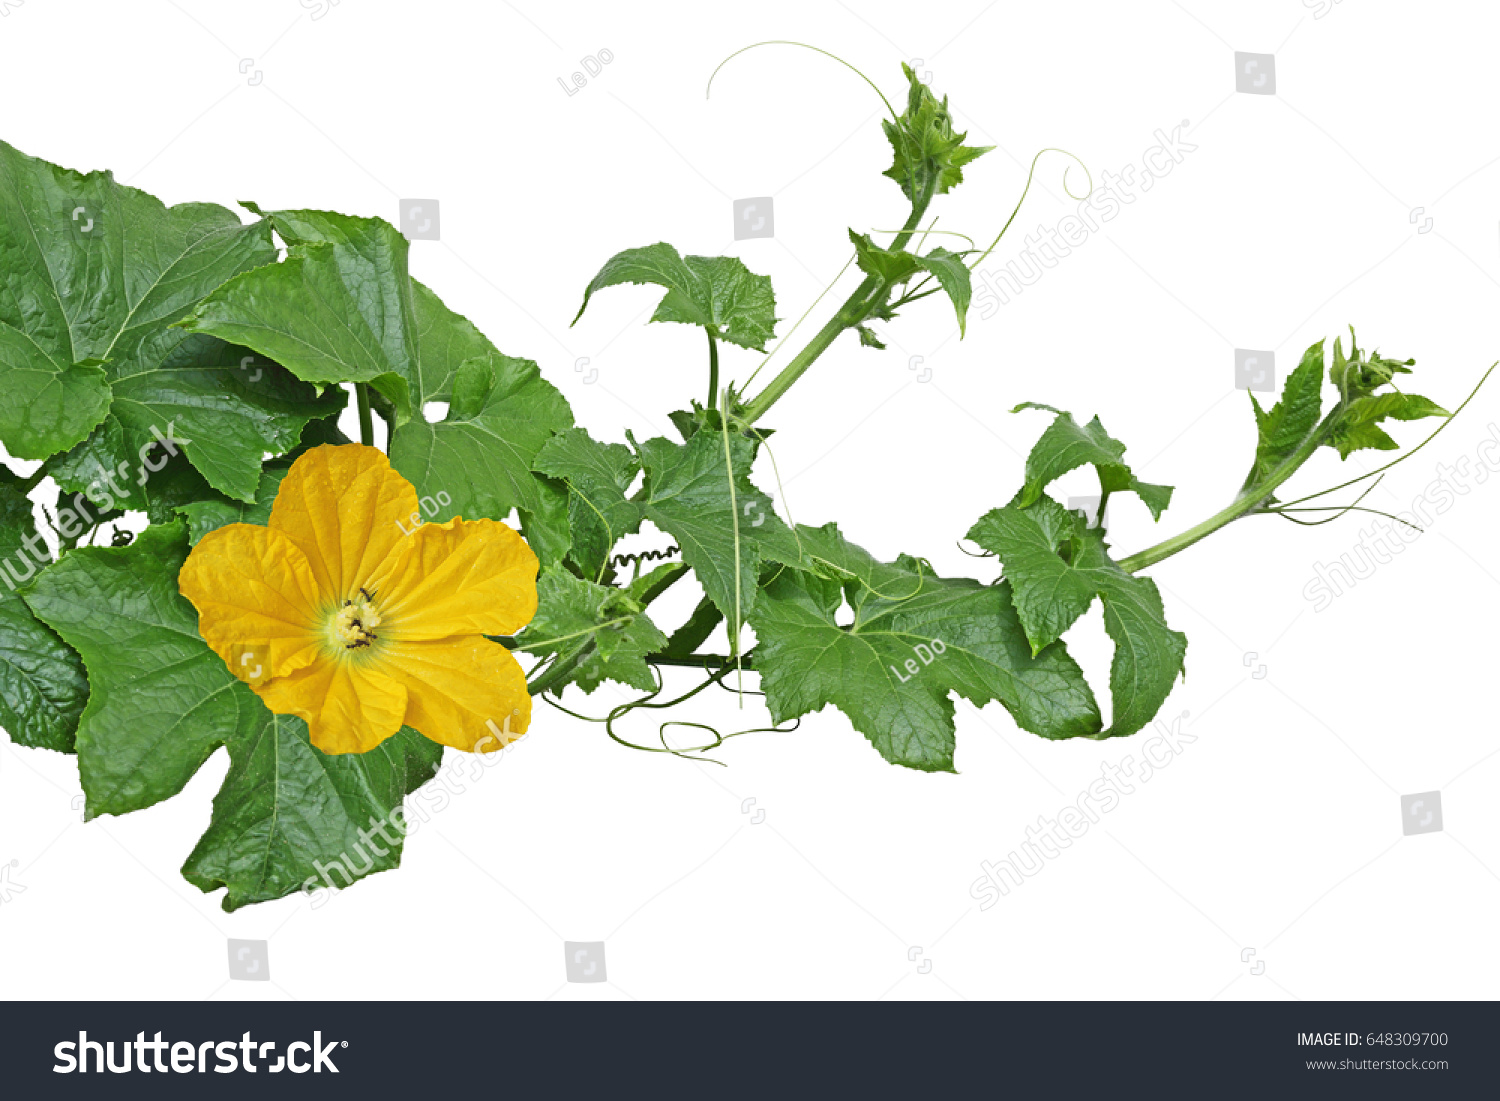 Winter melon squash vines leaves flowers stock photo royalty free winter melon squash vines with leaves and flowers isolated on white background mightylinksfo